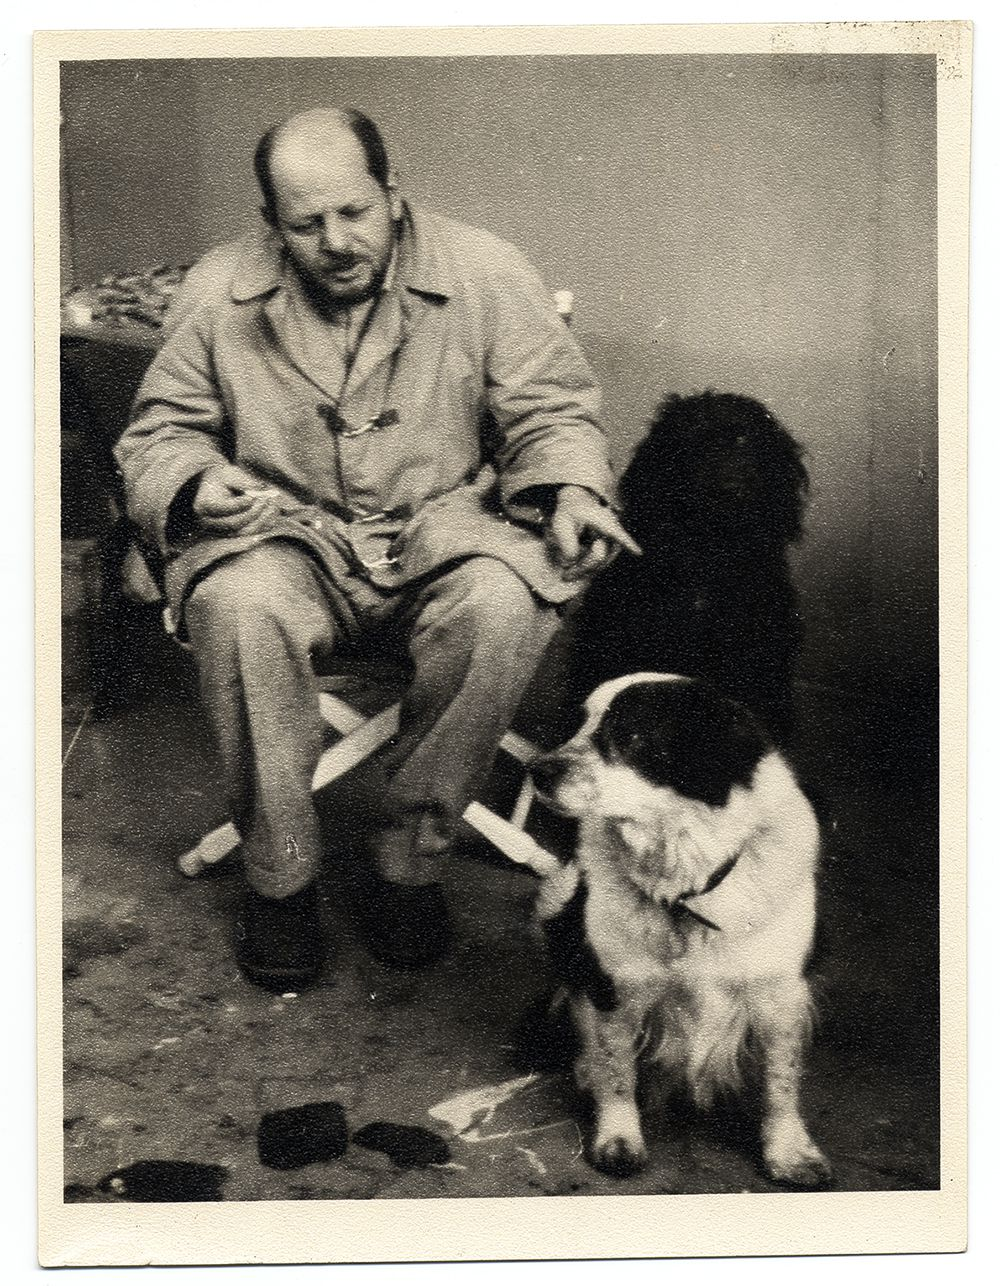 Photograph of Jackson Pollock with his pet dogs Gyp and Ahab